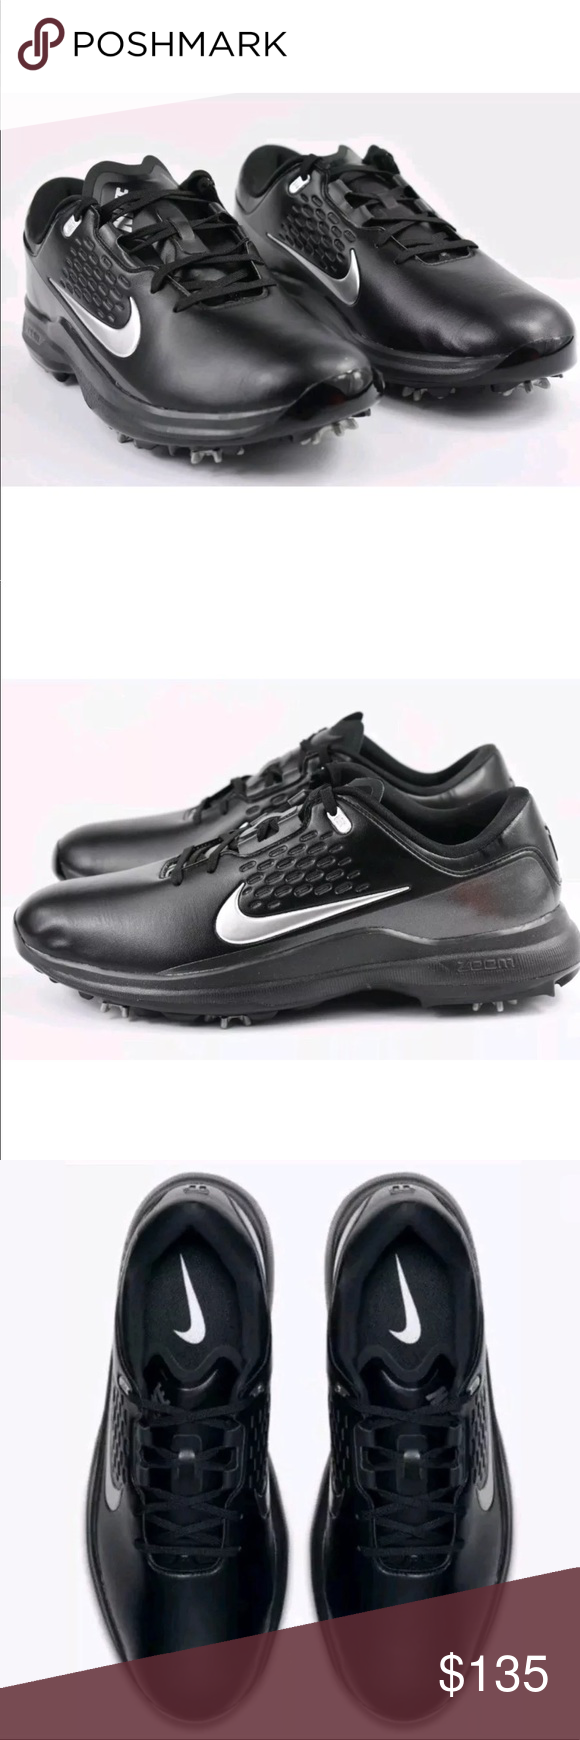 4aa7e90ce91c Nike Air Zoom TW71 Tiger🐅Woods⛳️Golf Shoe The Nike Air Zoom TW71 Tiger🐅 Woods⛳️Men s Golf Shoe AA1990- 002 features lightweight